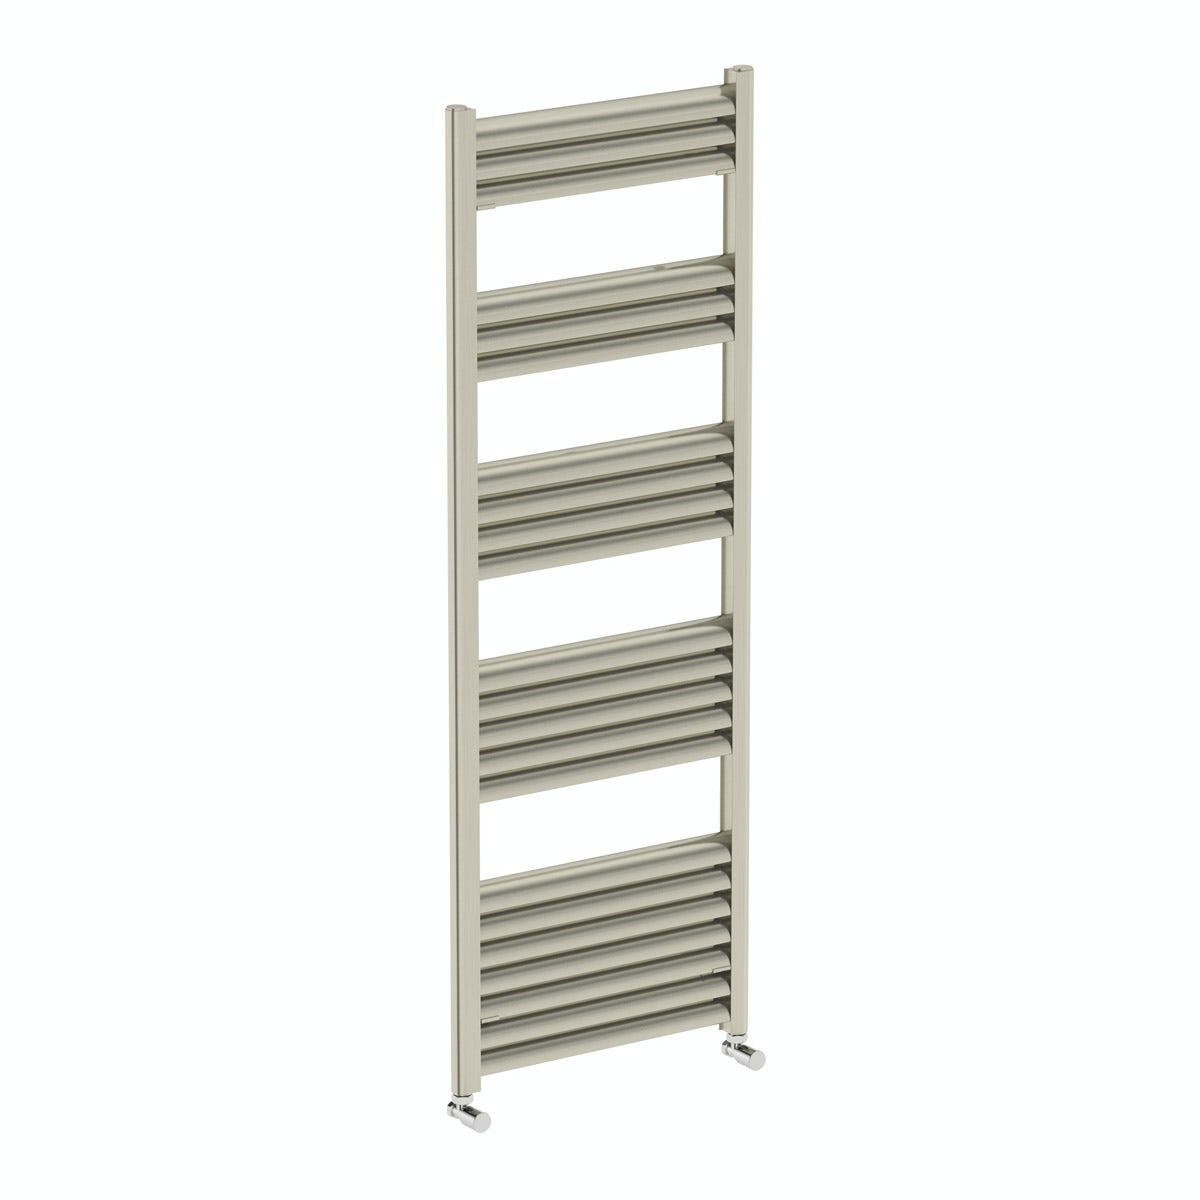 Carter heated towel rail 1400 x 500